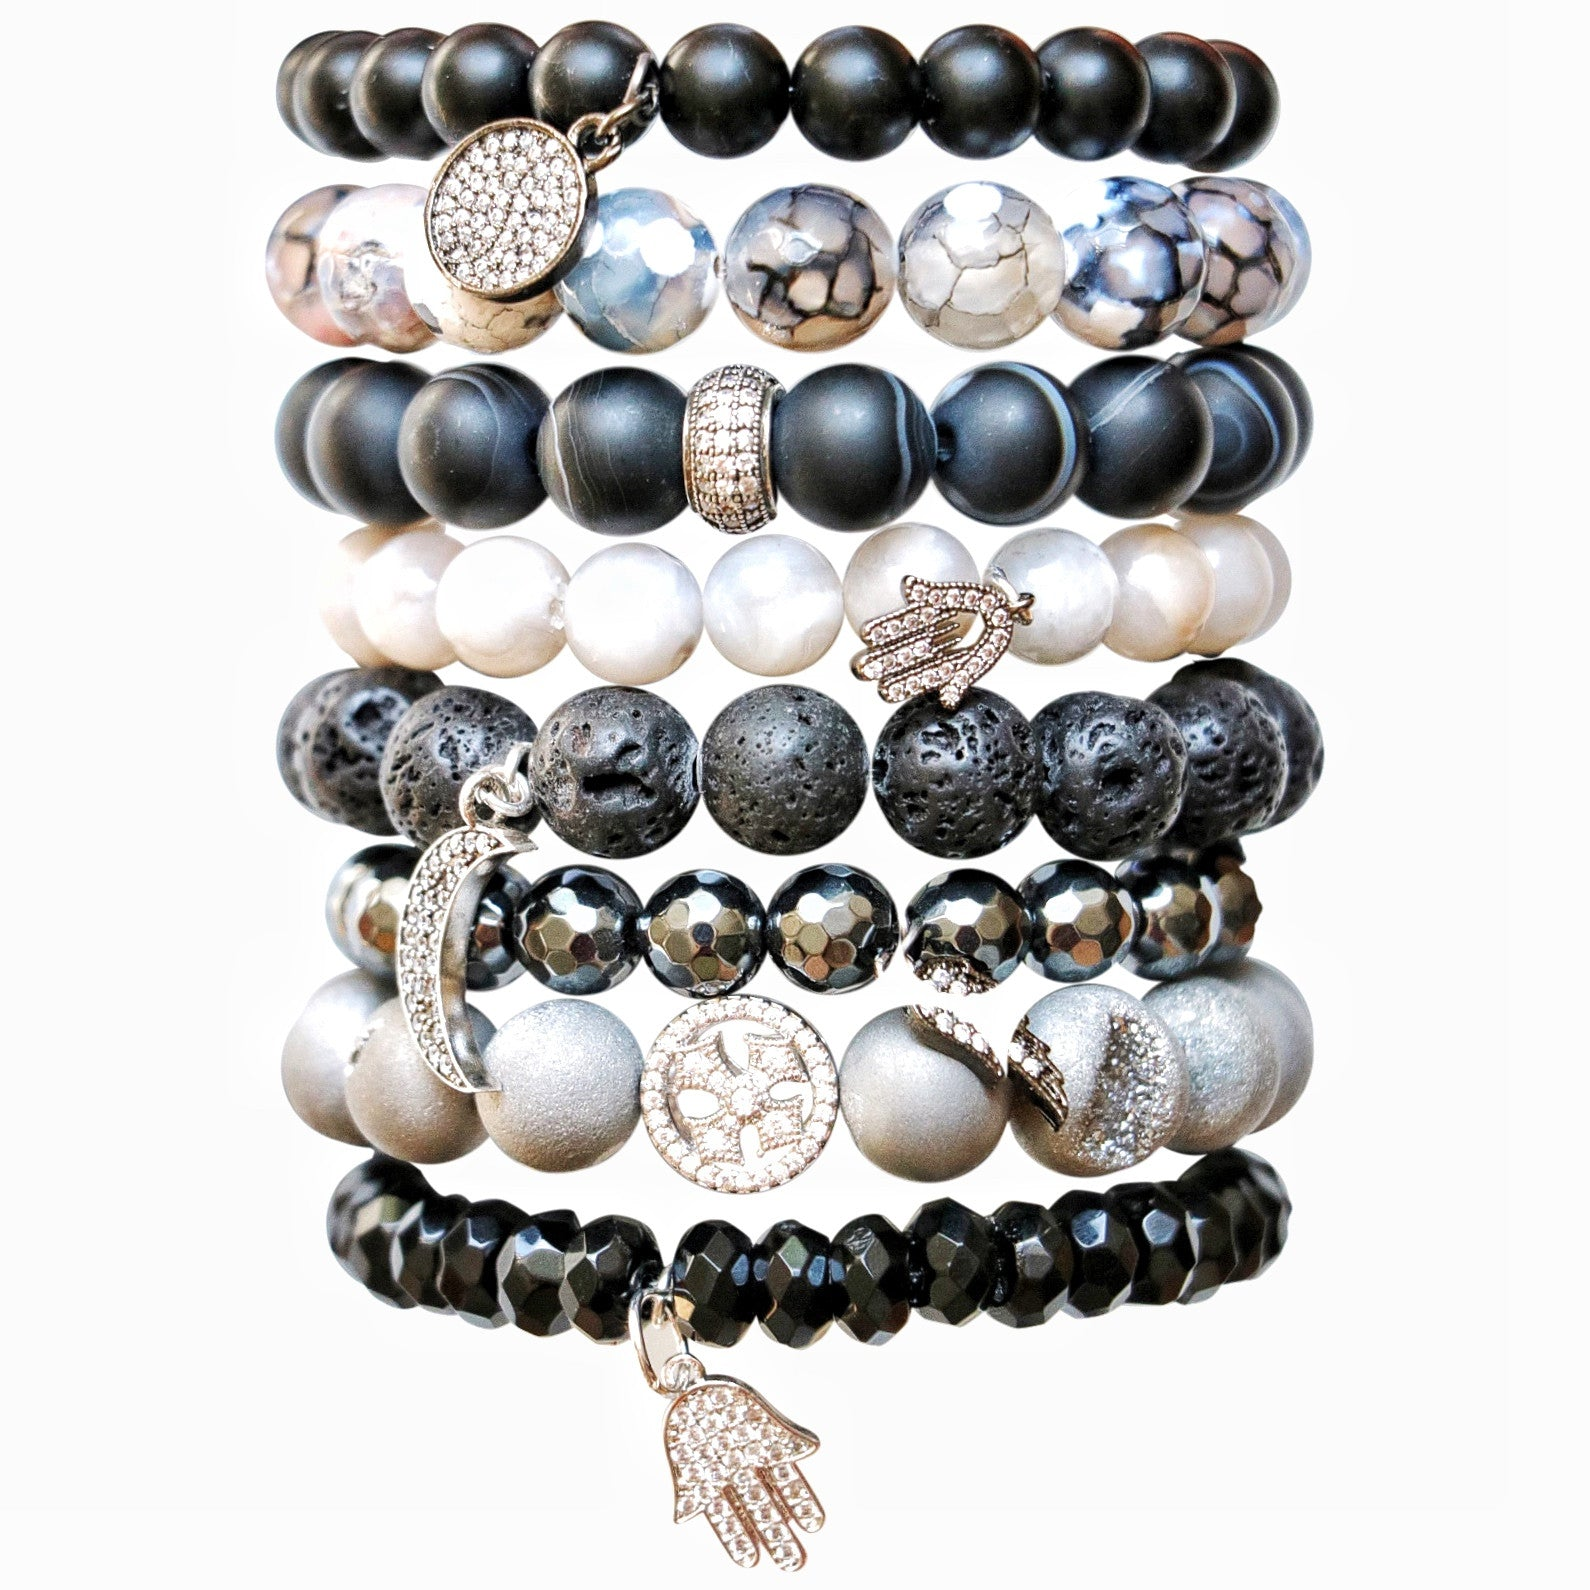 Molly Jane Designs Hematite Charm Bracelet